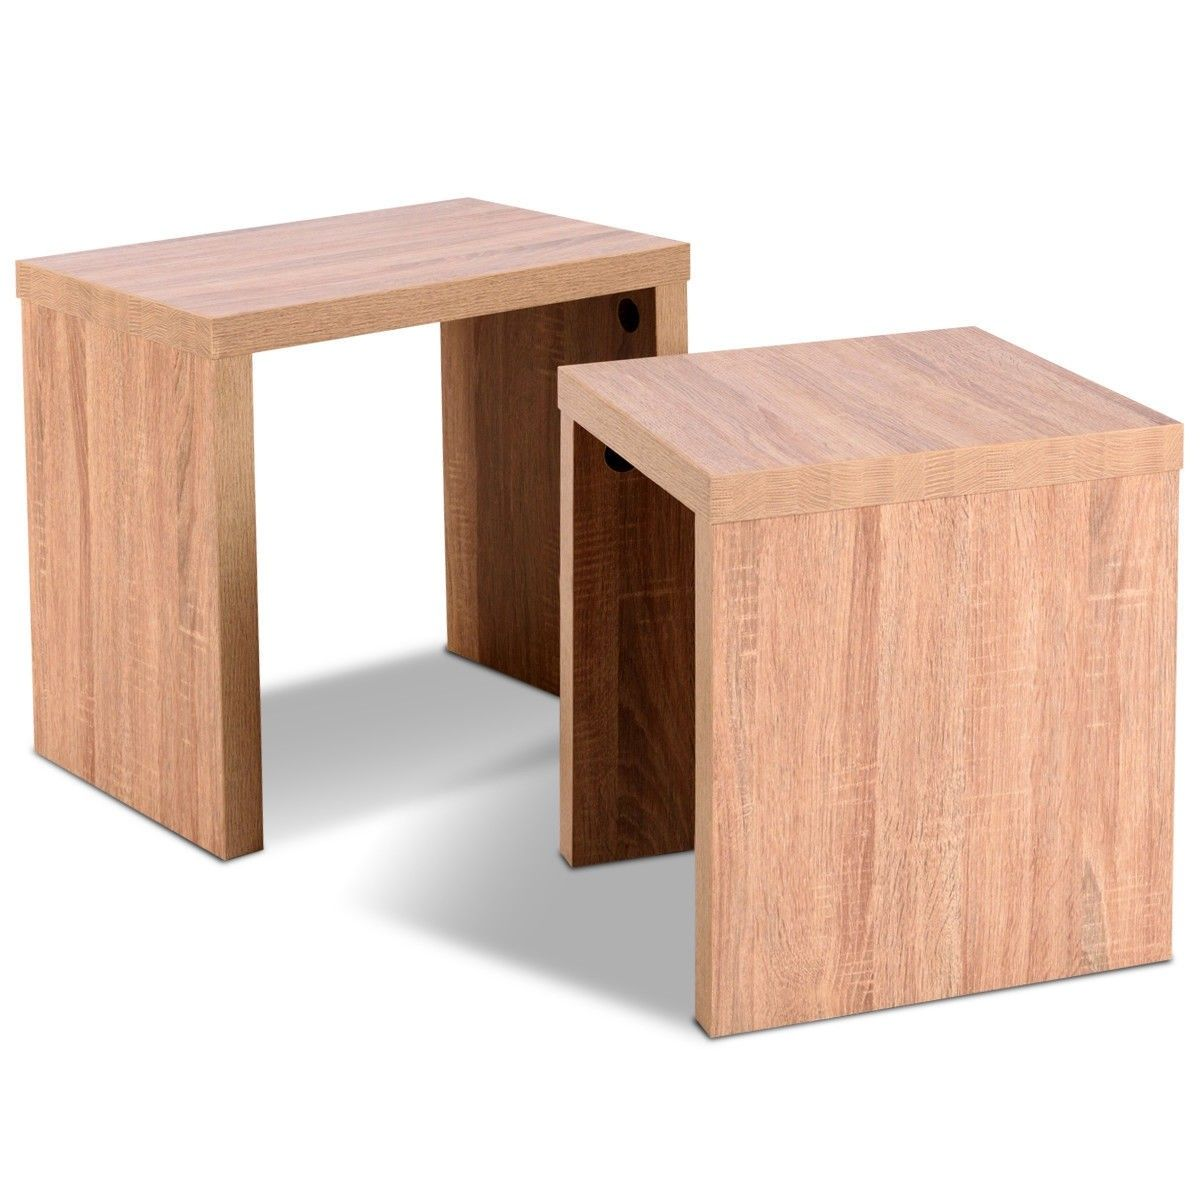 Pin On Furniture Tables #side #stools #for #living #room